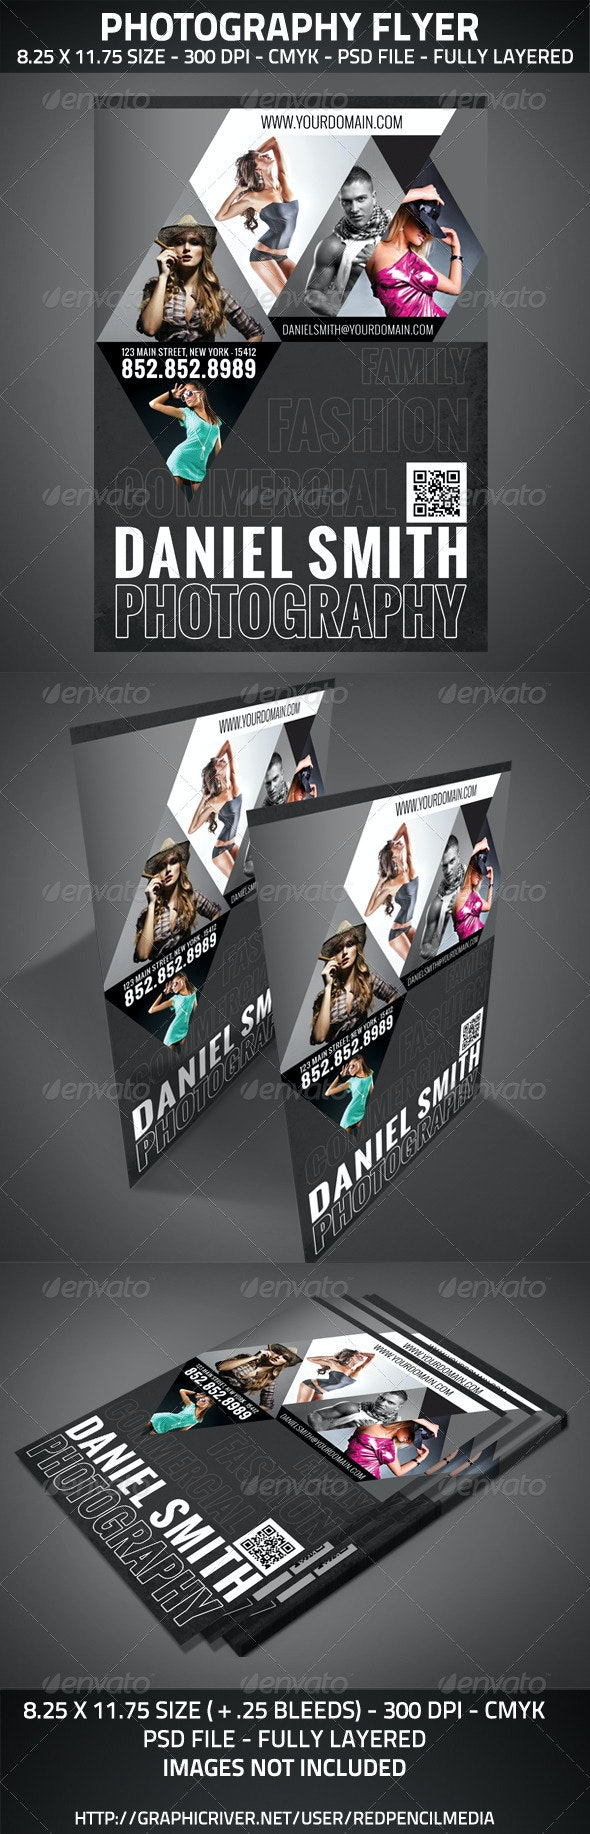 Photography Flyer A4 - Miscellaneous Events